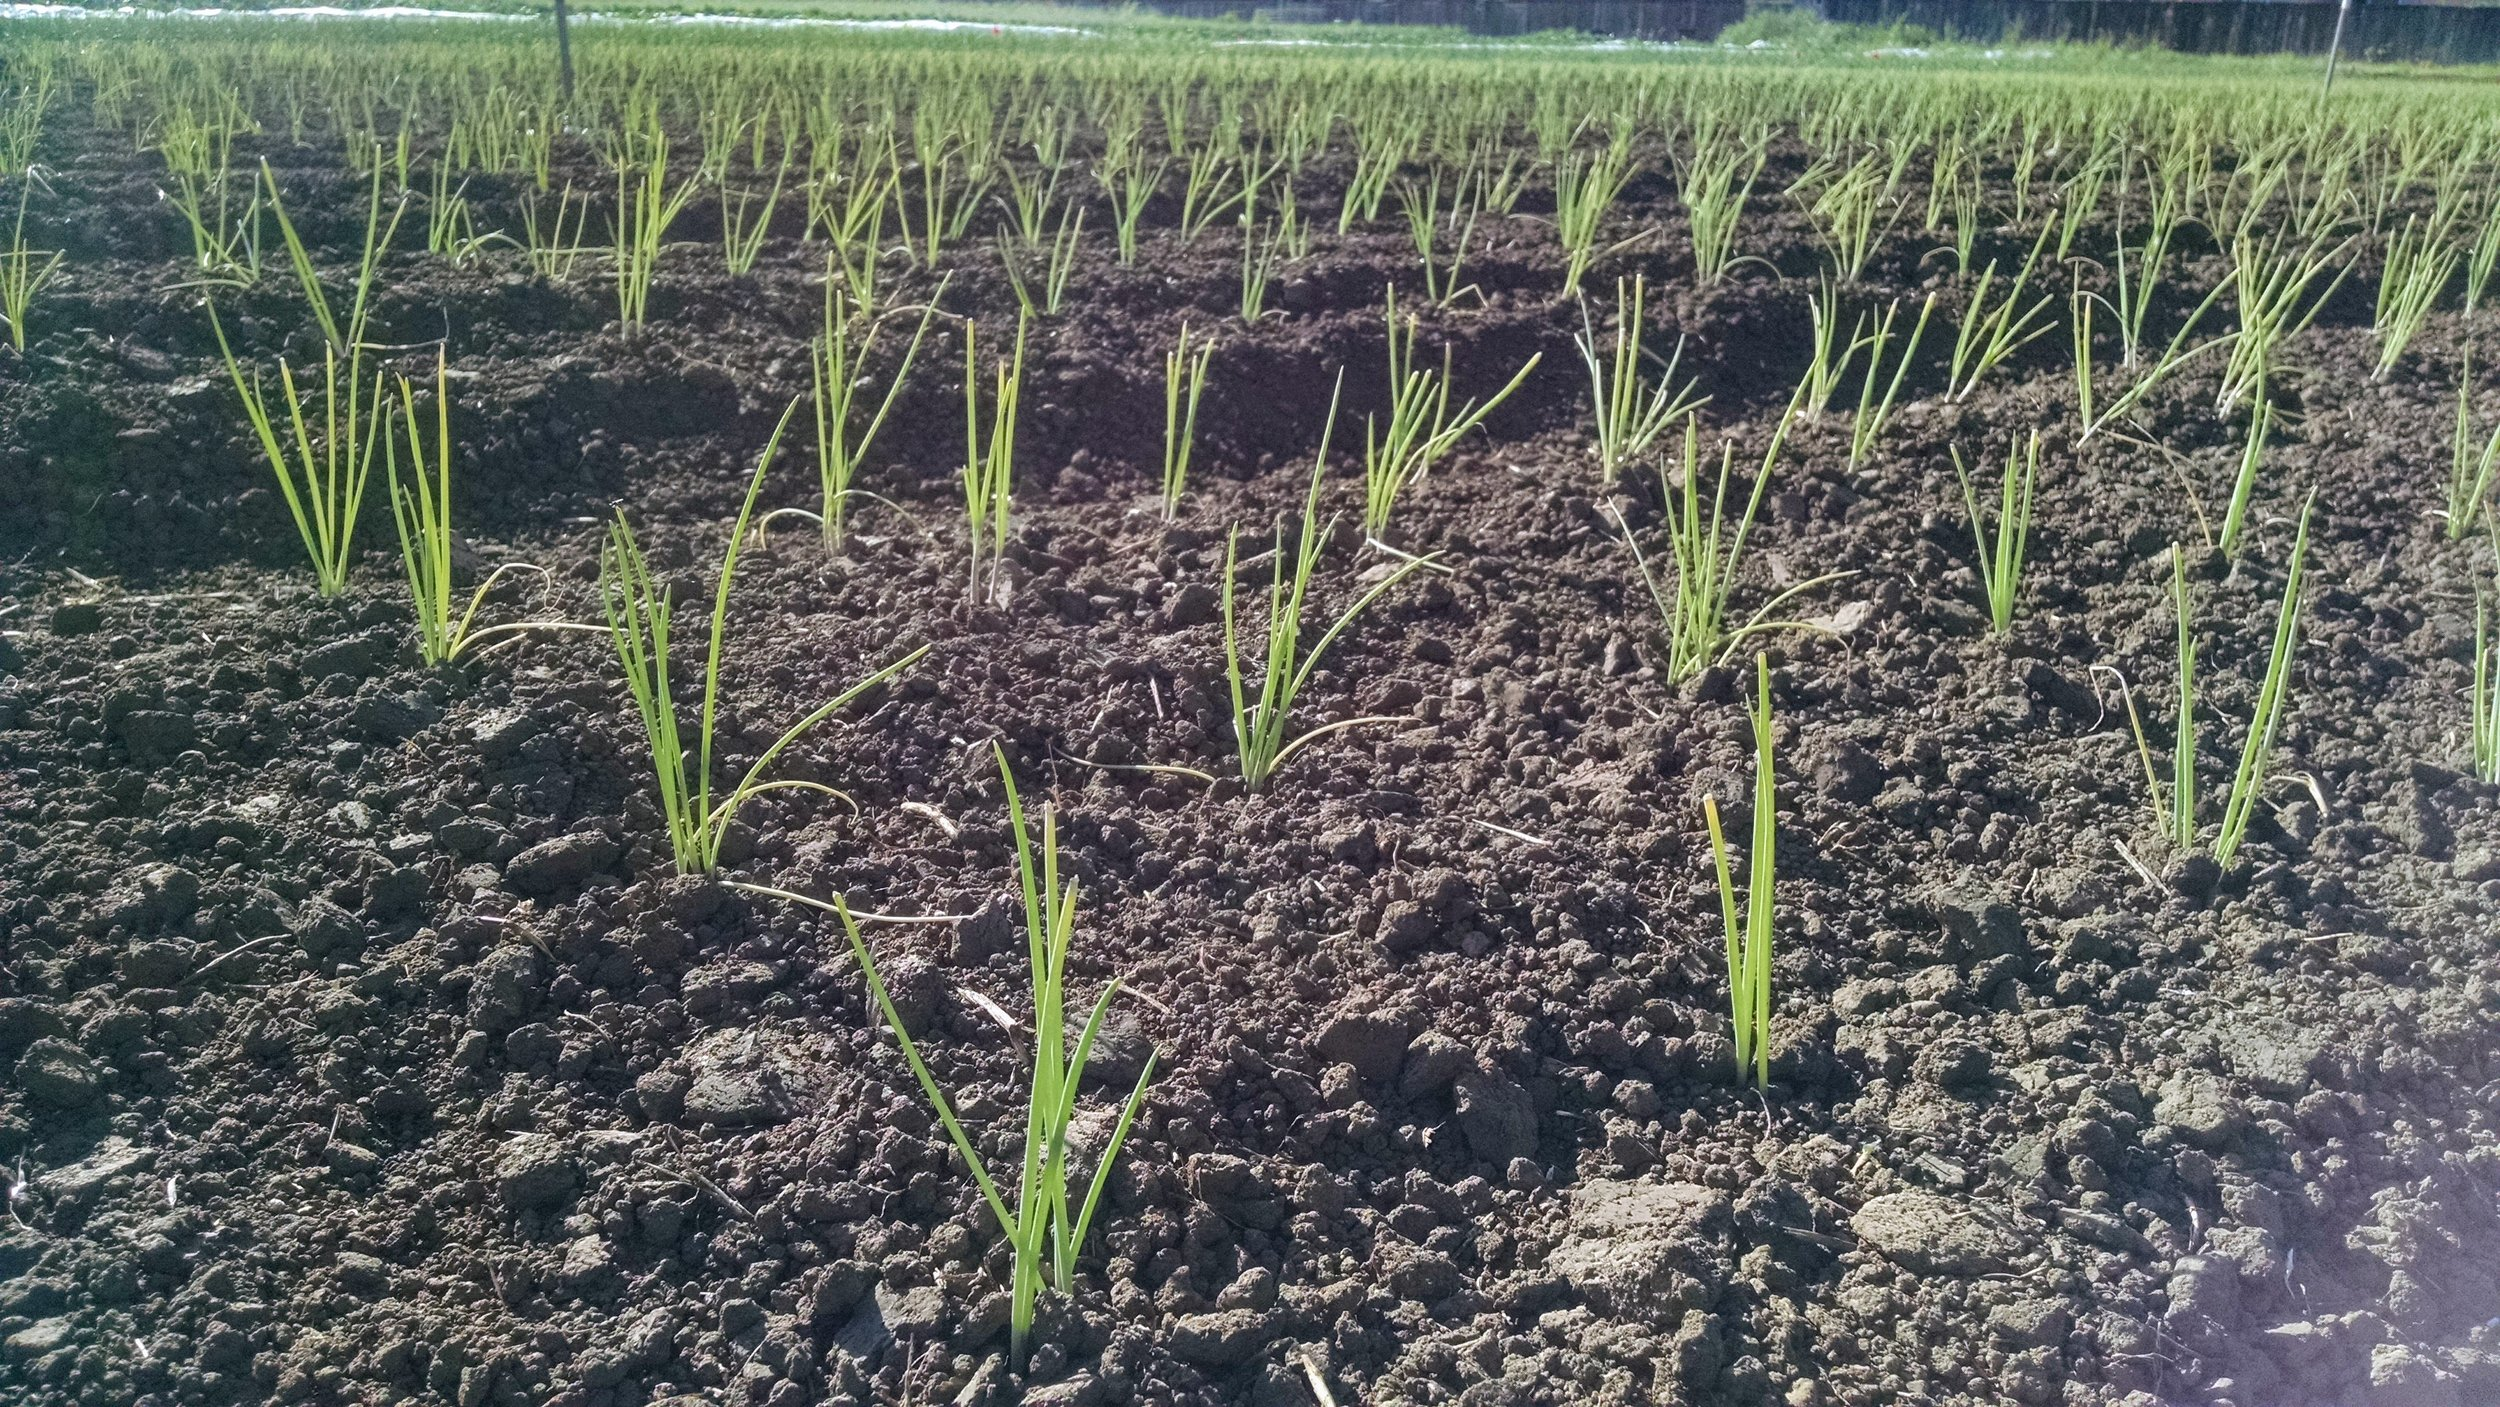 Onion pairs settling in to the field in late May